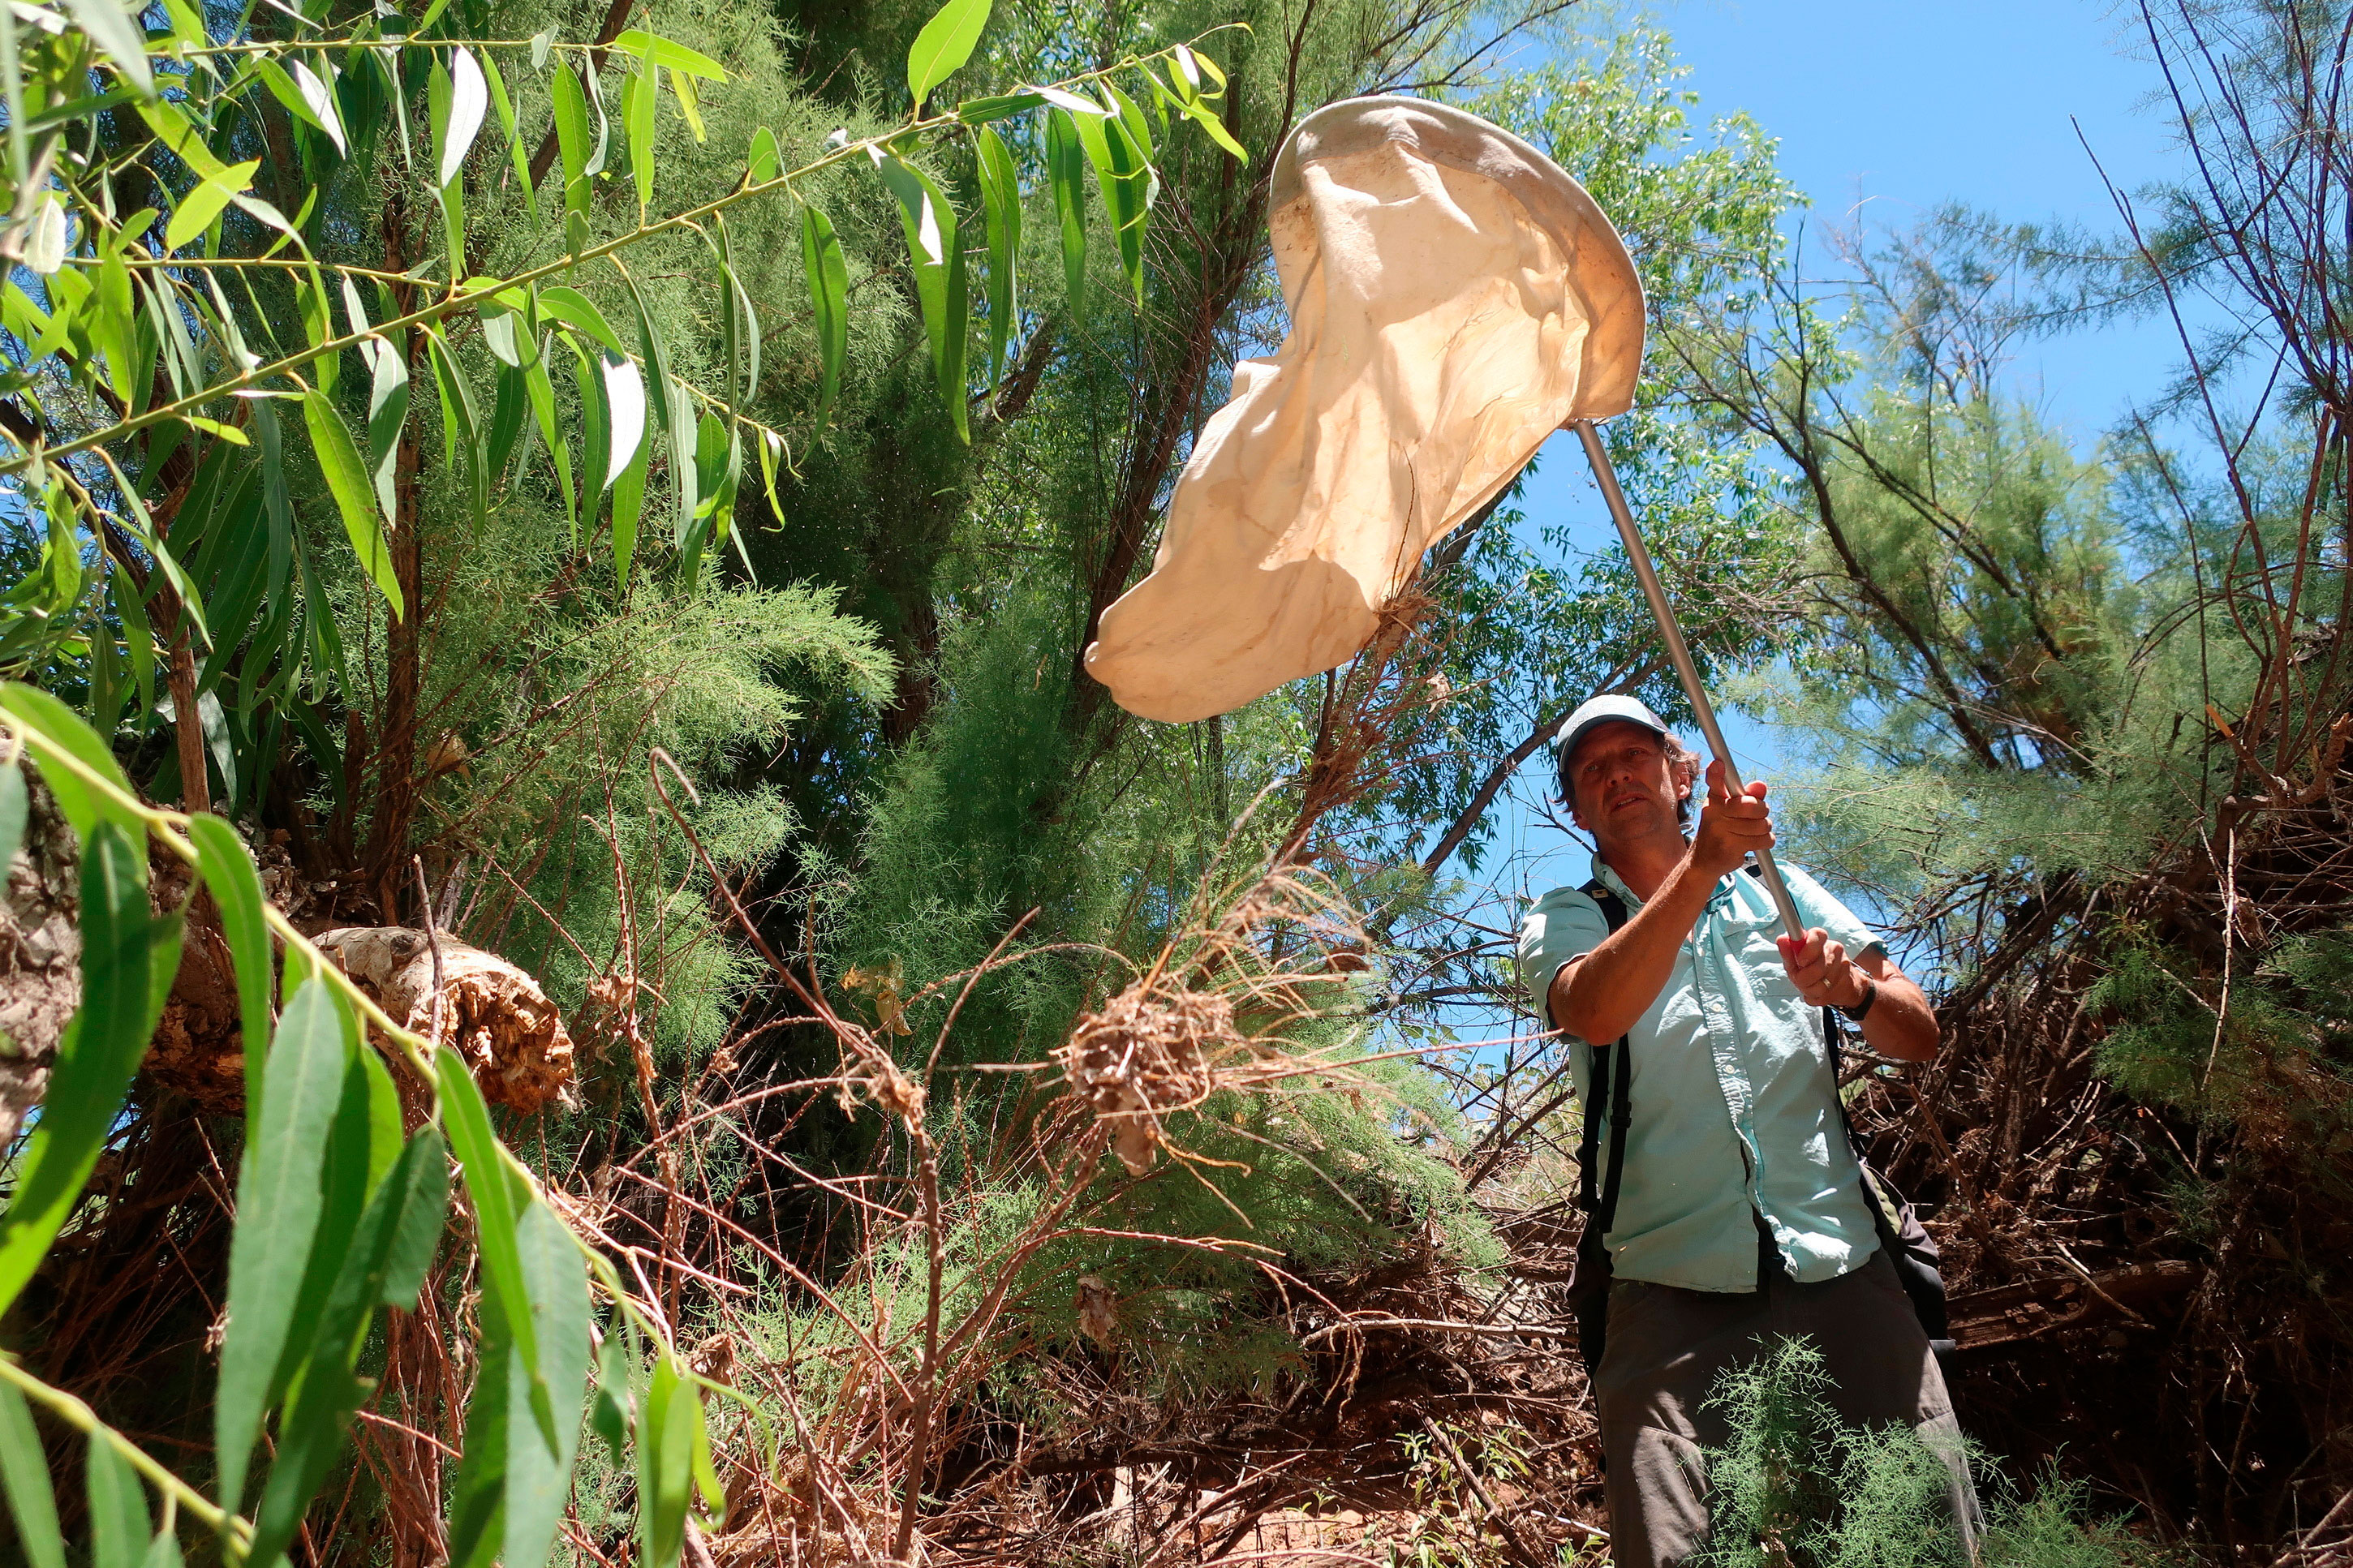 In this Tuesday, July 9, 2019 photo Northern Arizona University researcher Matt Johnson sweeps tamarisk trees along the Verde River in Clarkdale, Ariz., in search of beetles that feed on the leaves. The beetles were brought to the U.S. from Asia to devour invasive tamarisk, or salt cedar, trees.